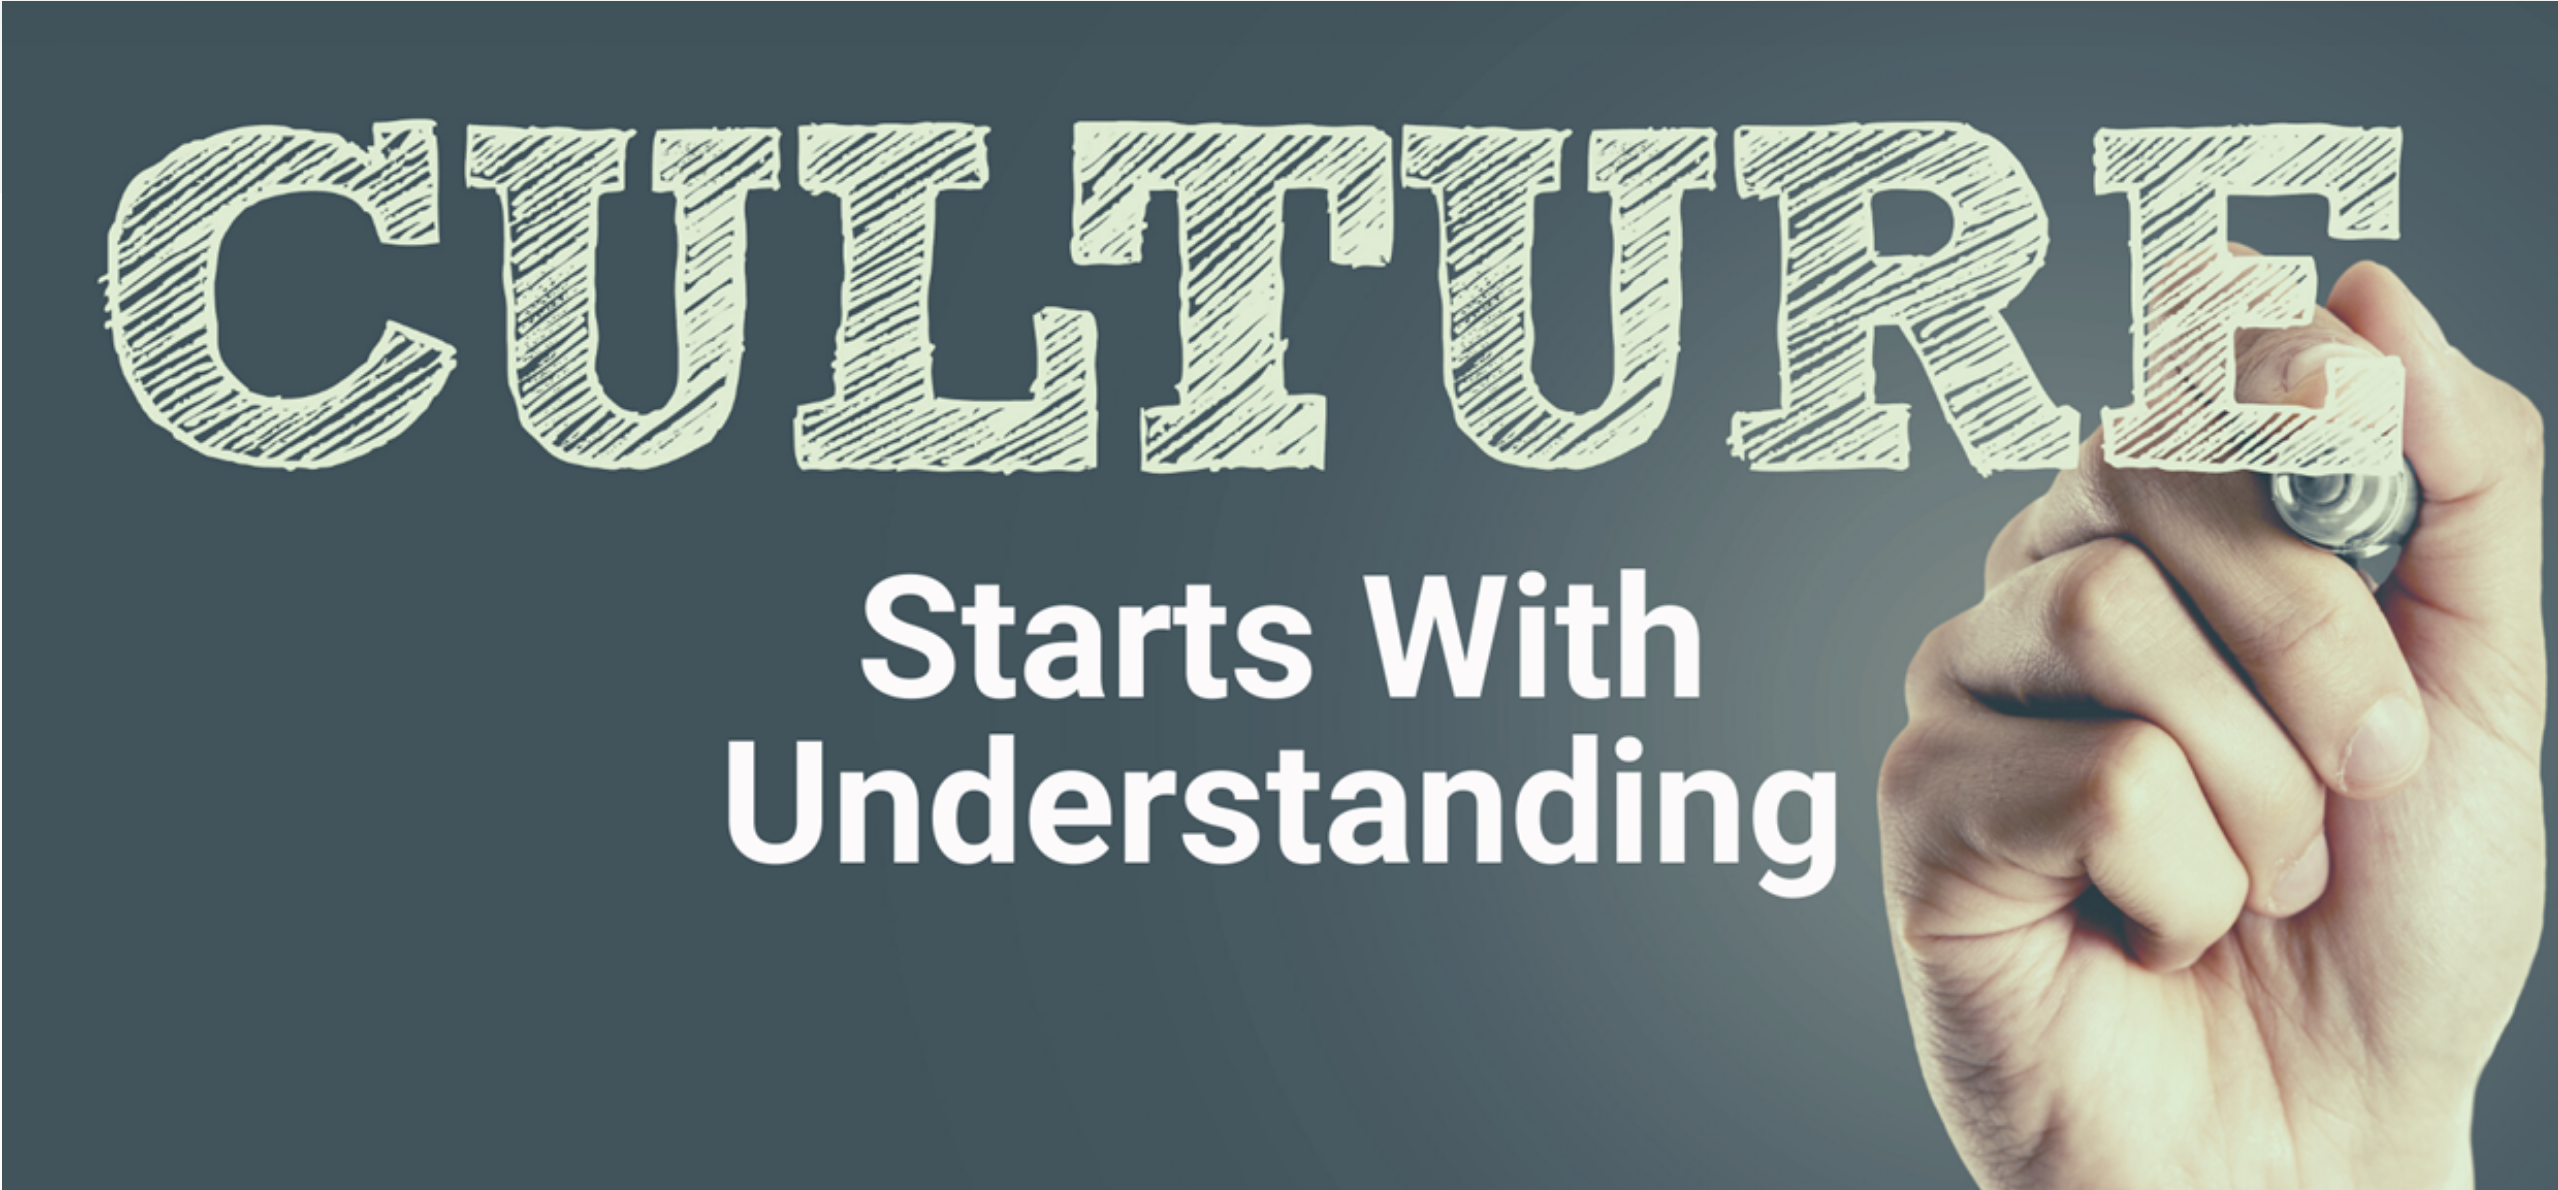 Great culture starts with understanding